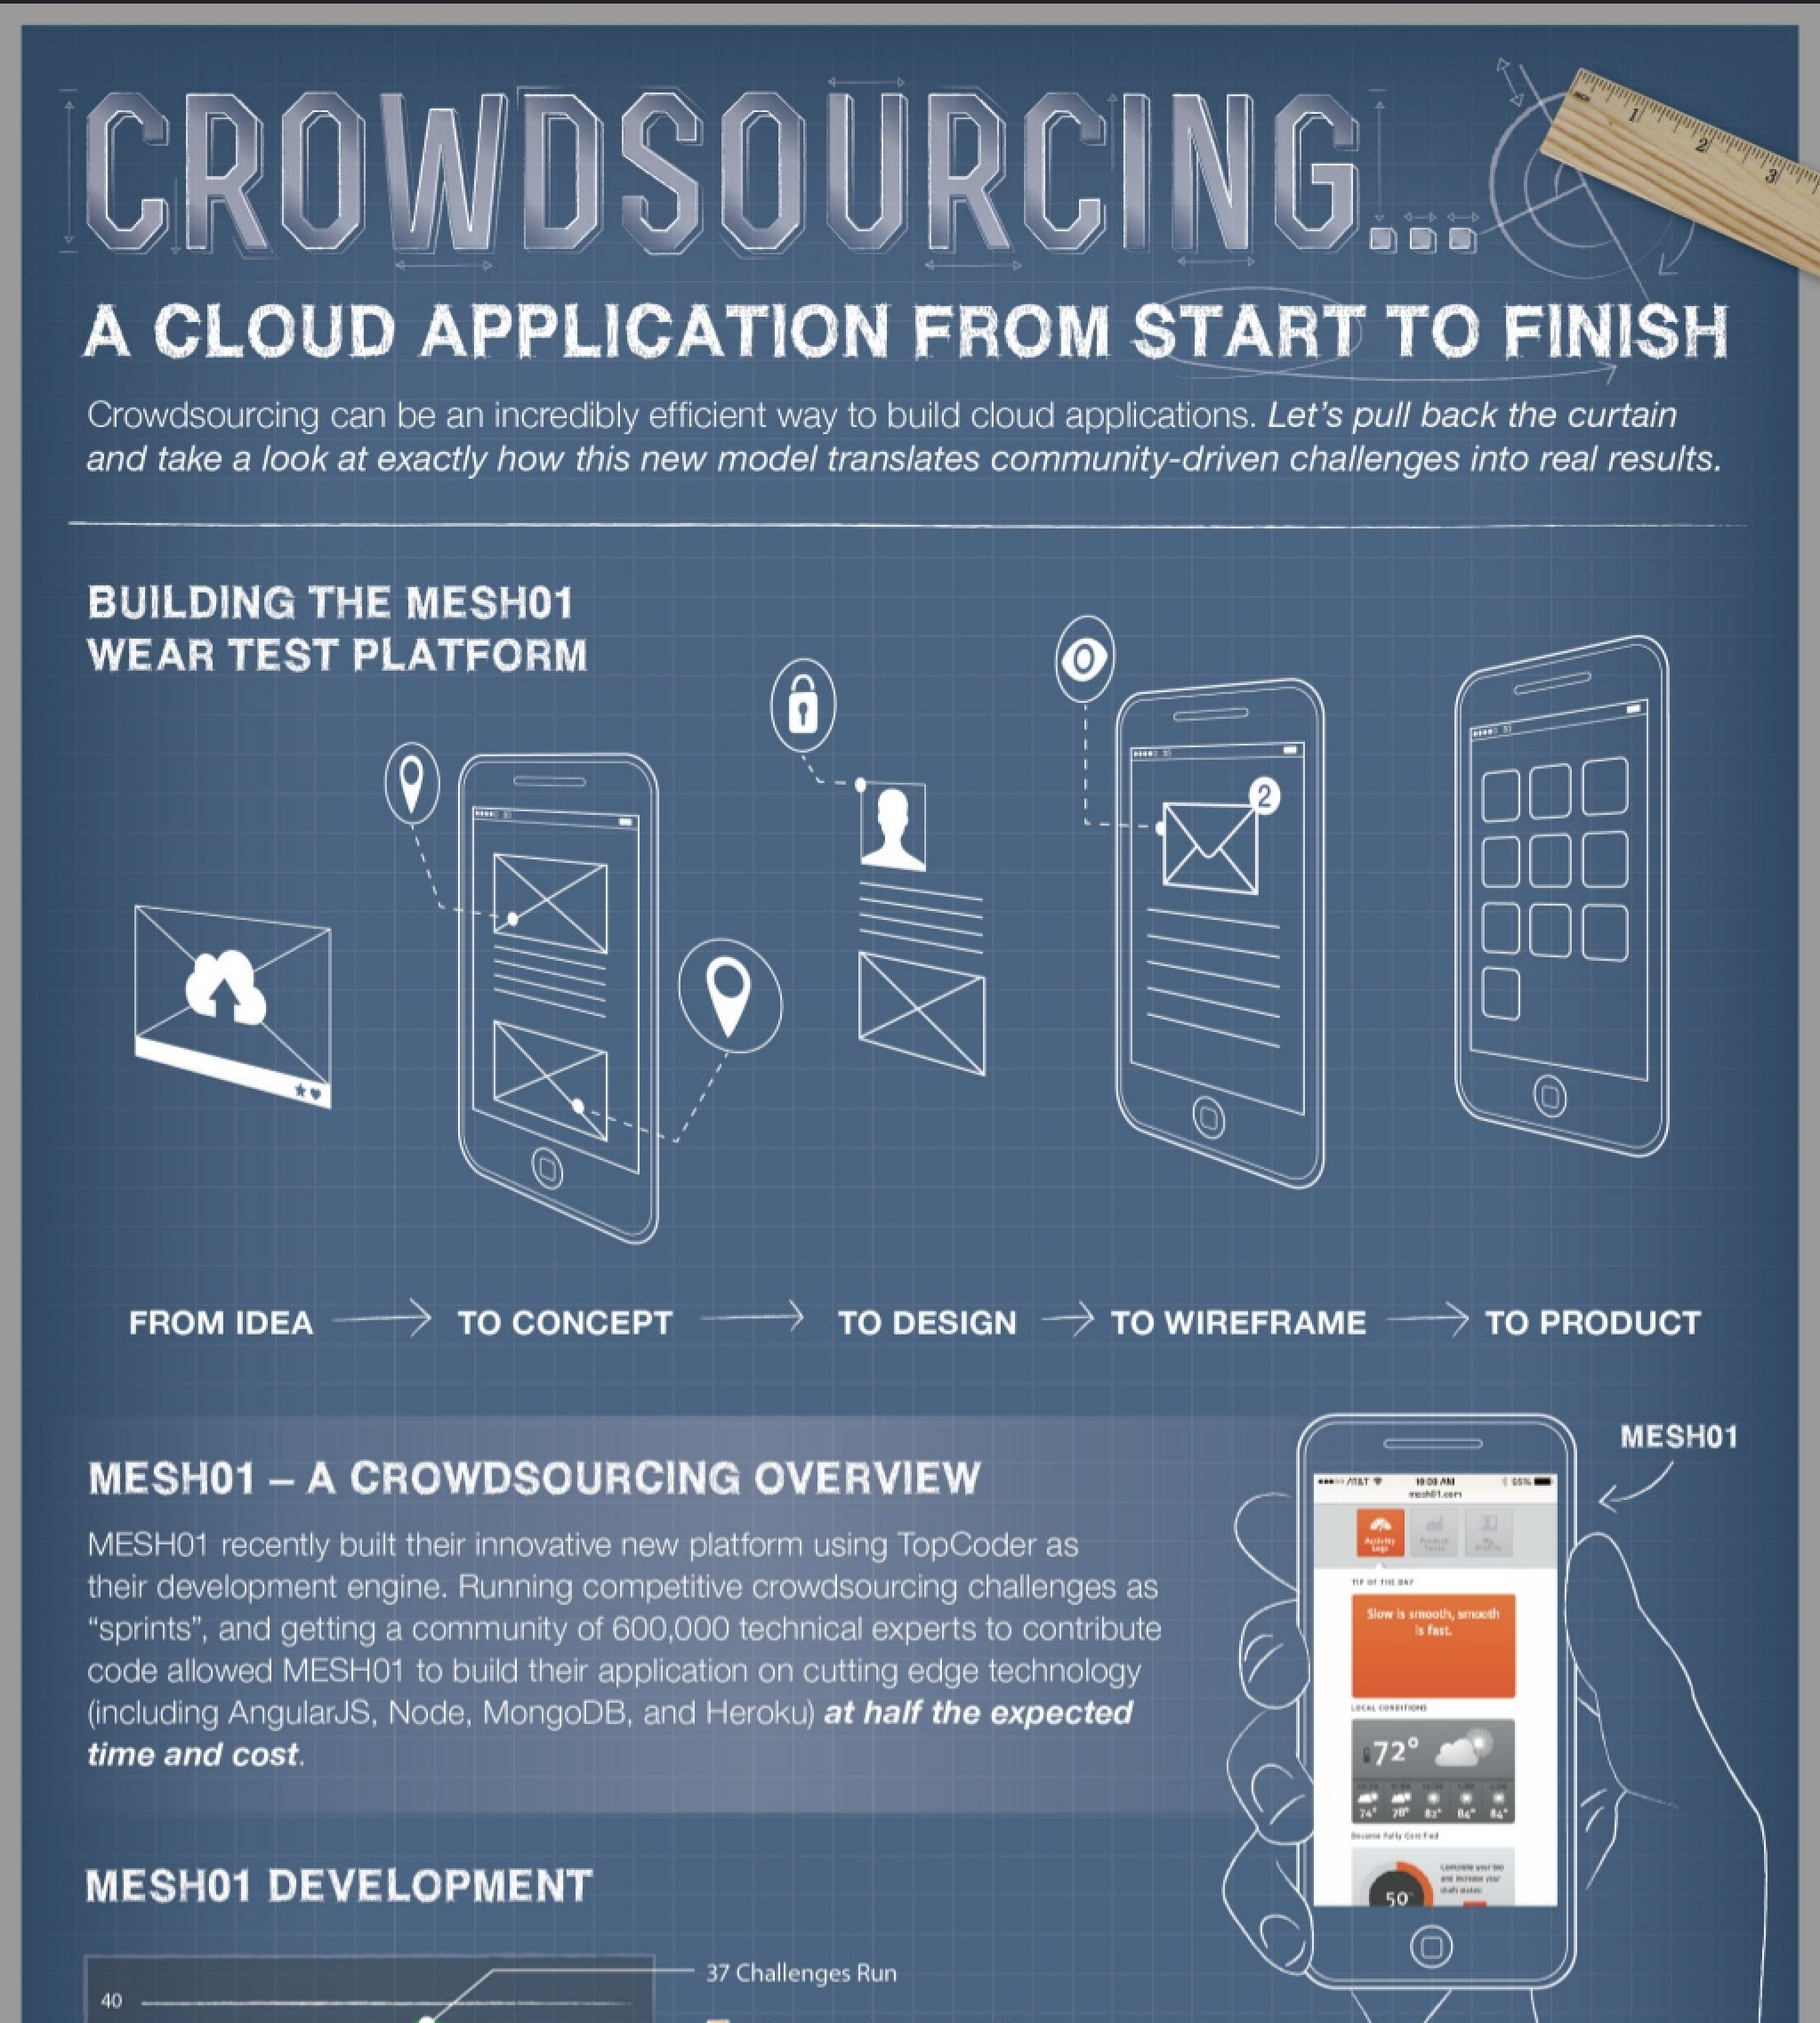 Crowdsourcing a Cloud Application from Start to Finish